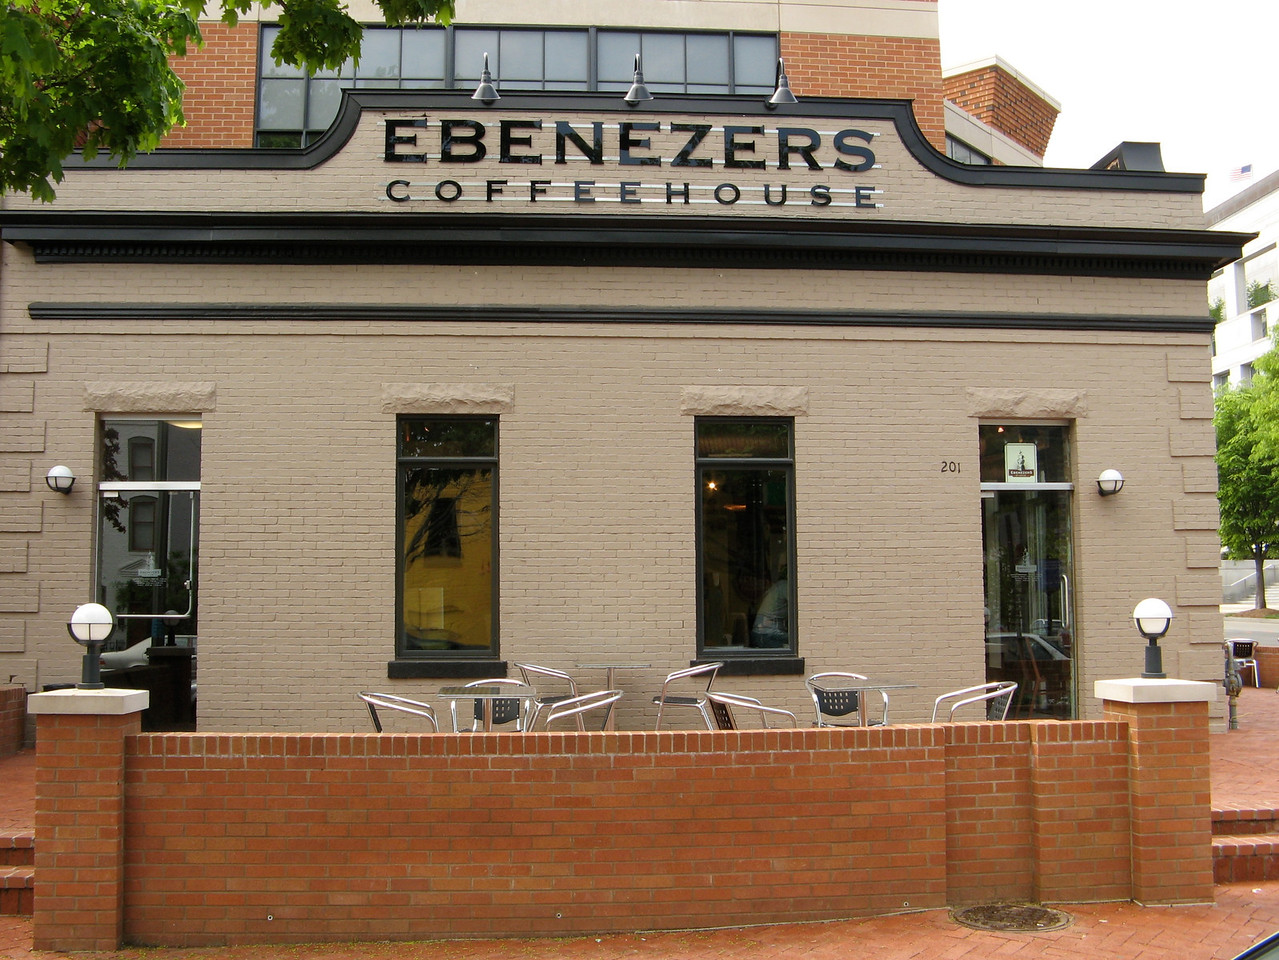 Ebenezer's Coffeehouse at 201 F St NE is located very close to Union Station.